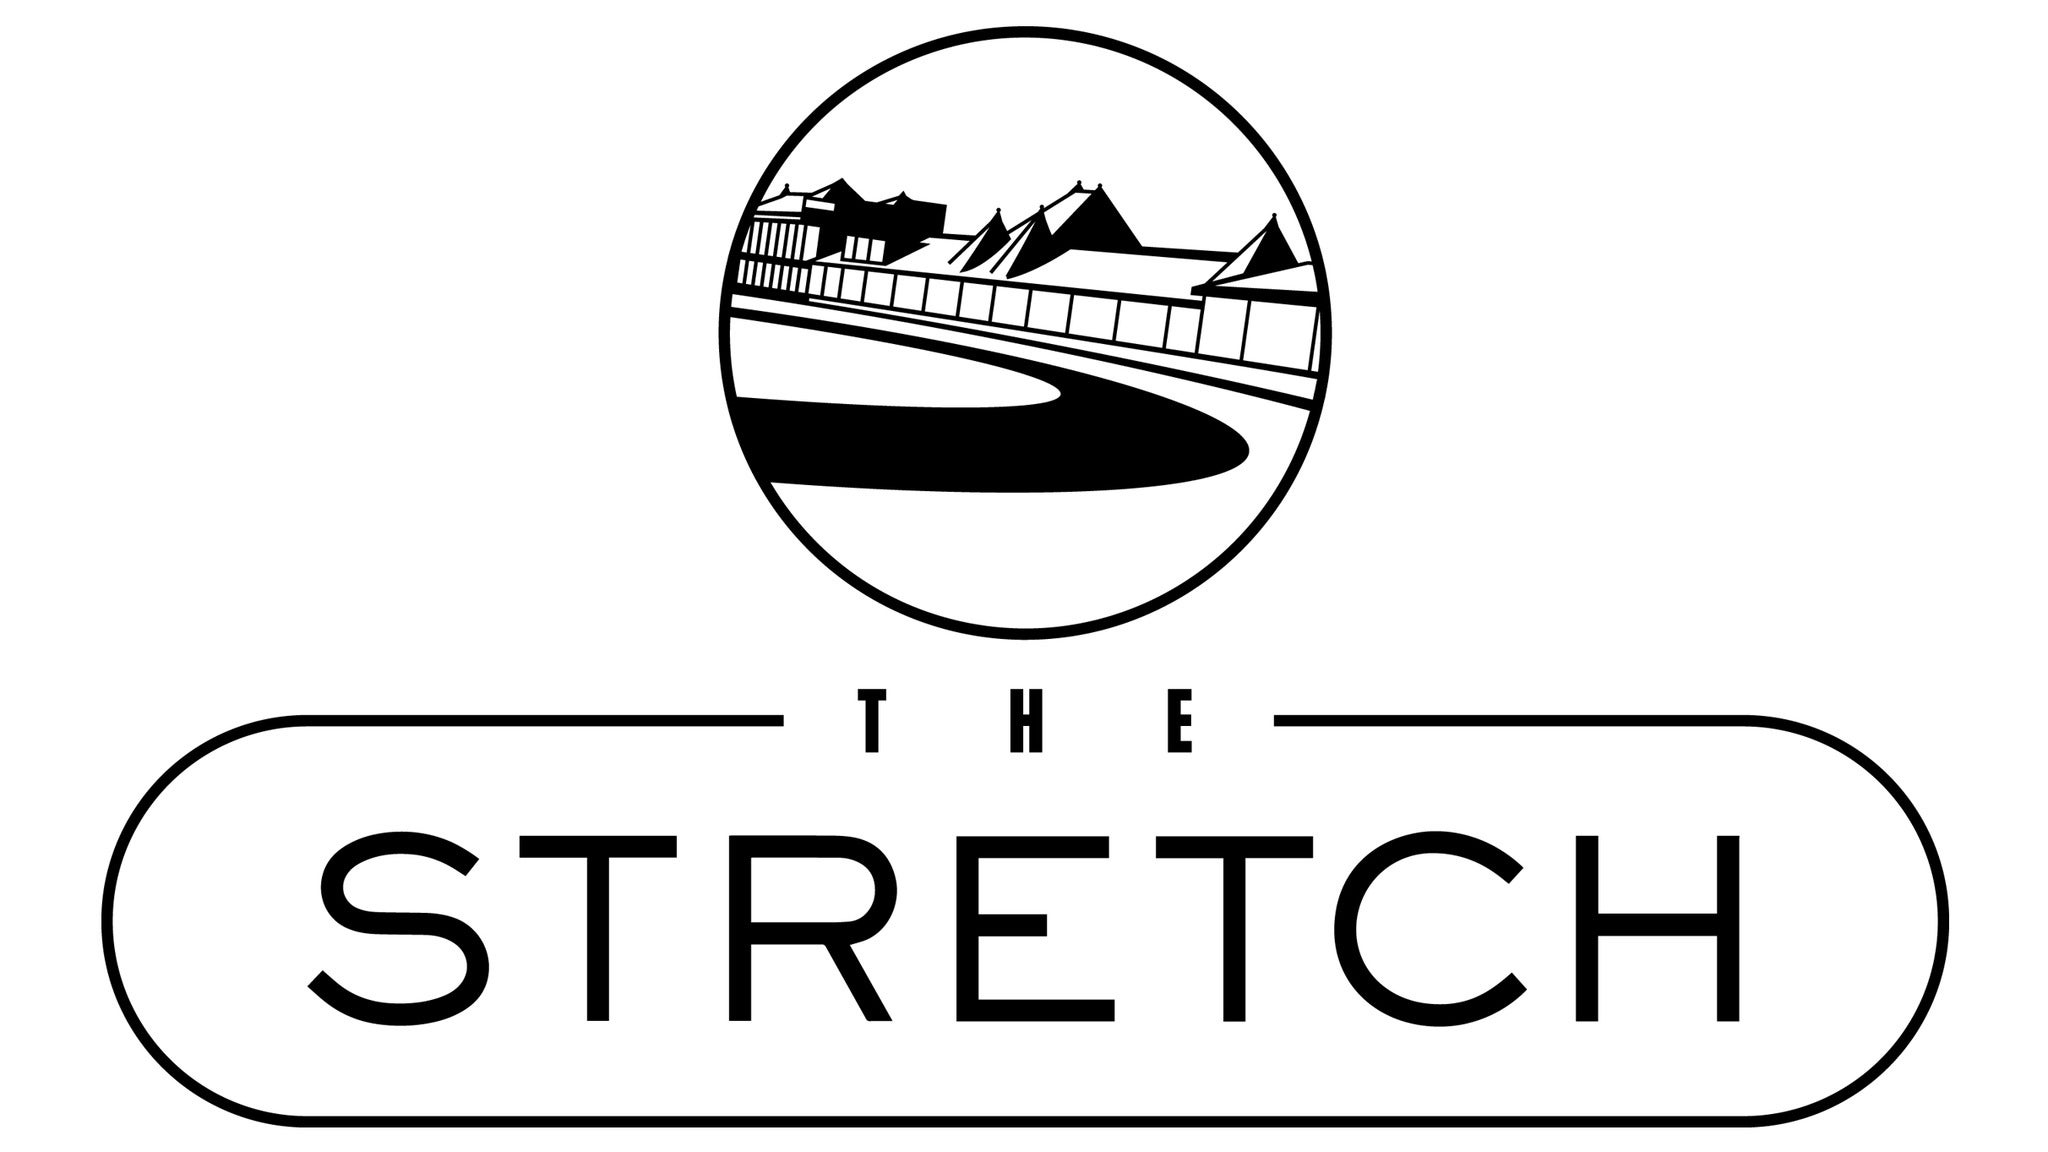 The Stretch Seating